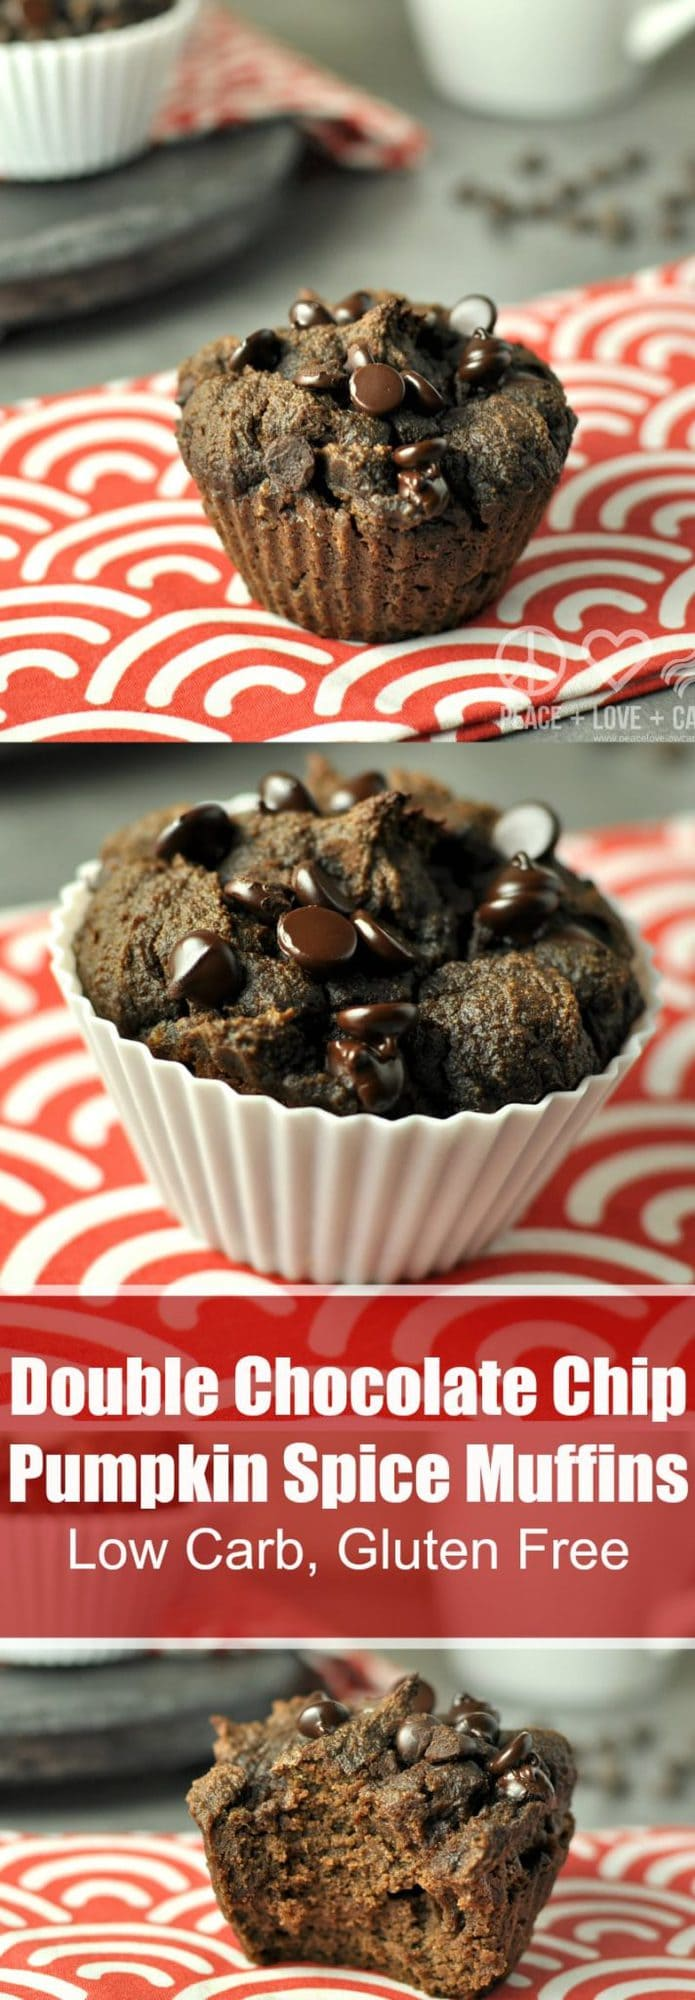 Double Chocolate Chip Pumpkin Spice Muffins - Low Carb, Gluten ...